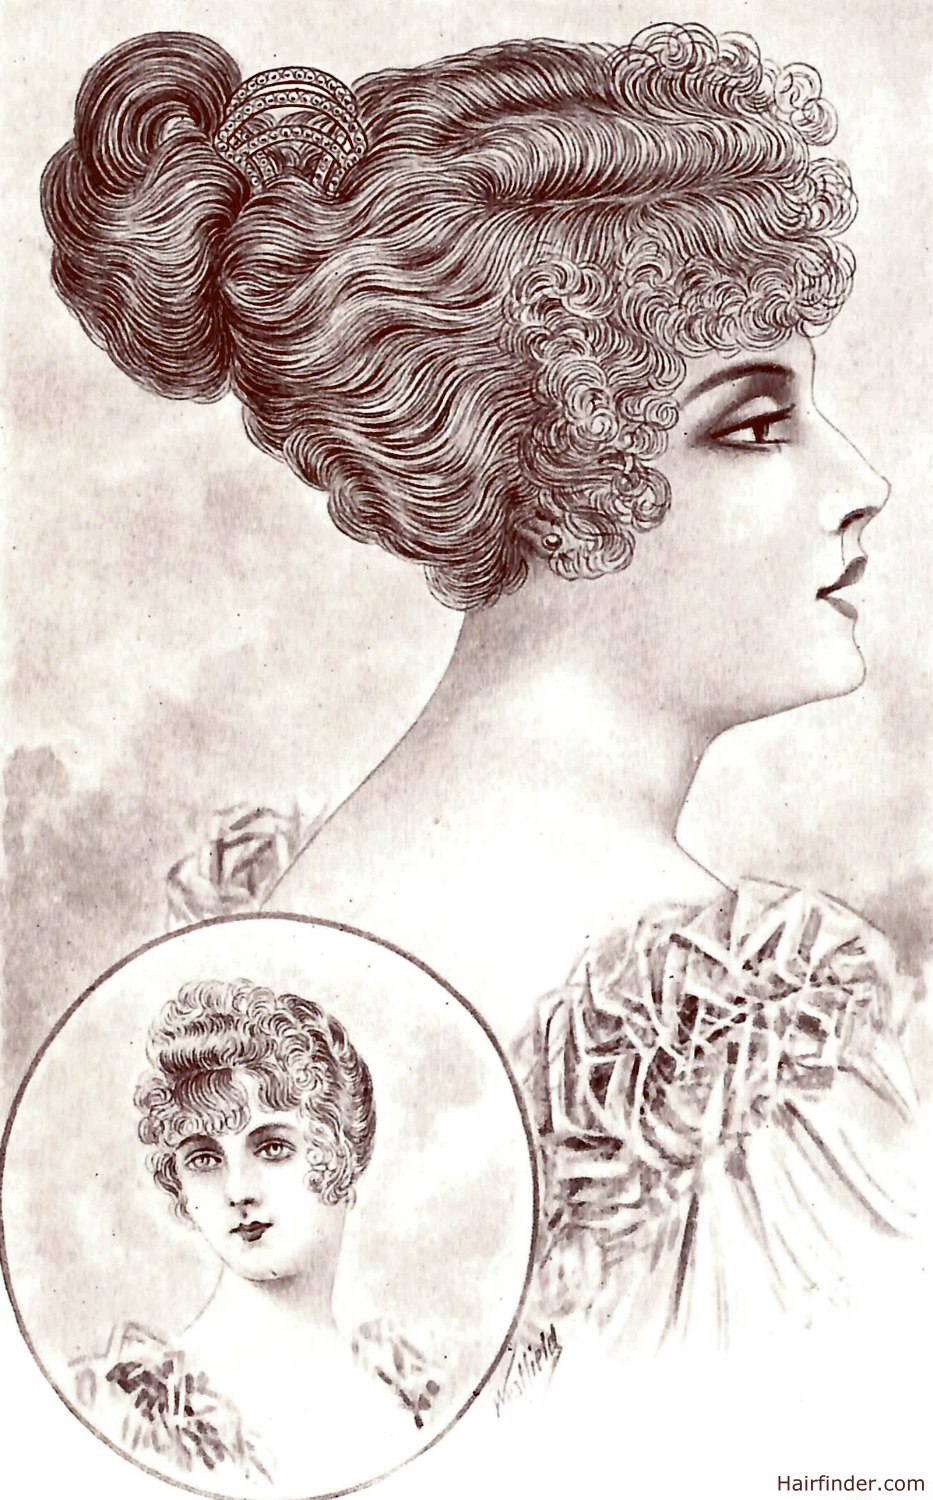 Adored Vintage 12 Vintage Hairstyles To Try For: 1920s Hairstyle With Ringlets And A Faux-fringe